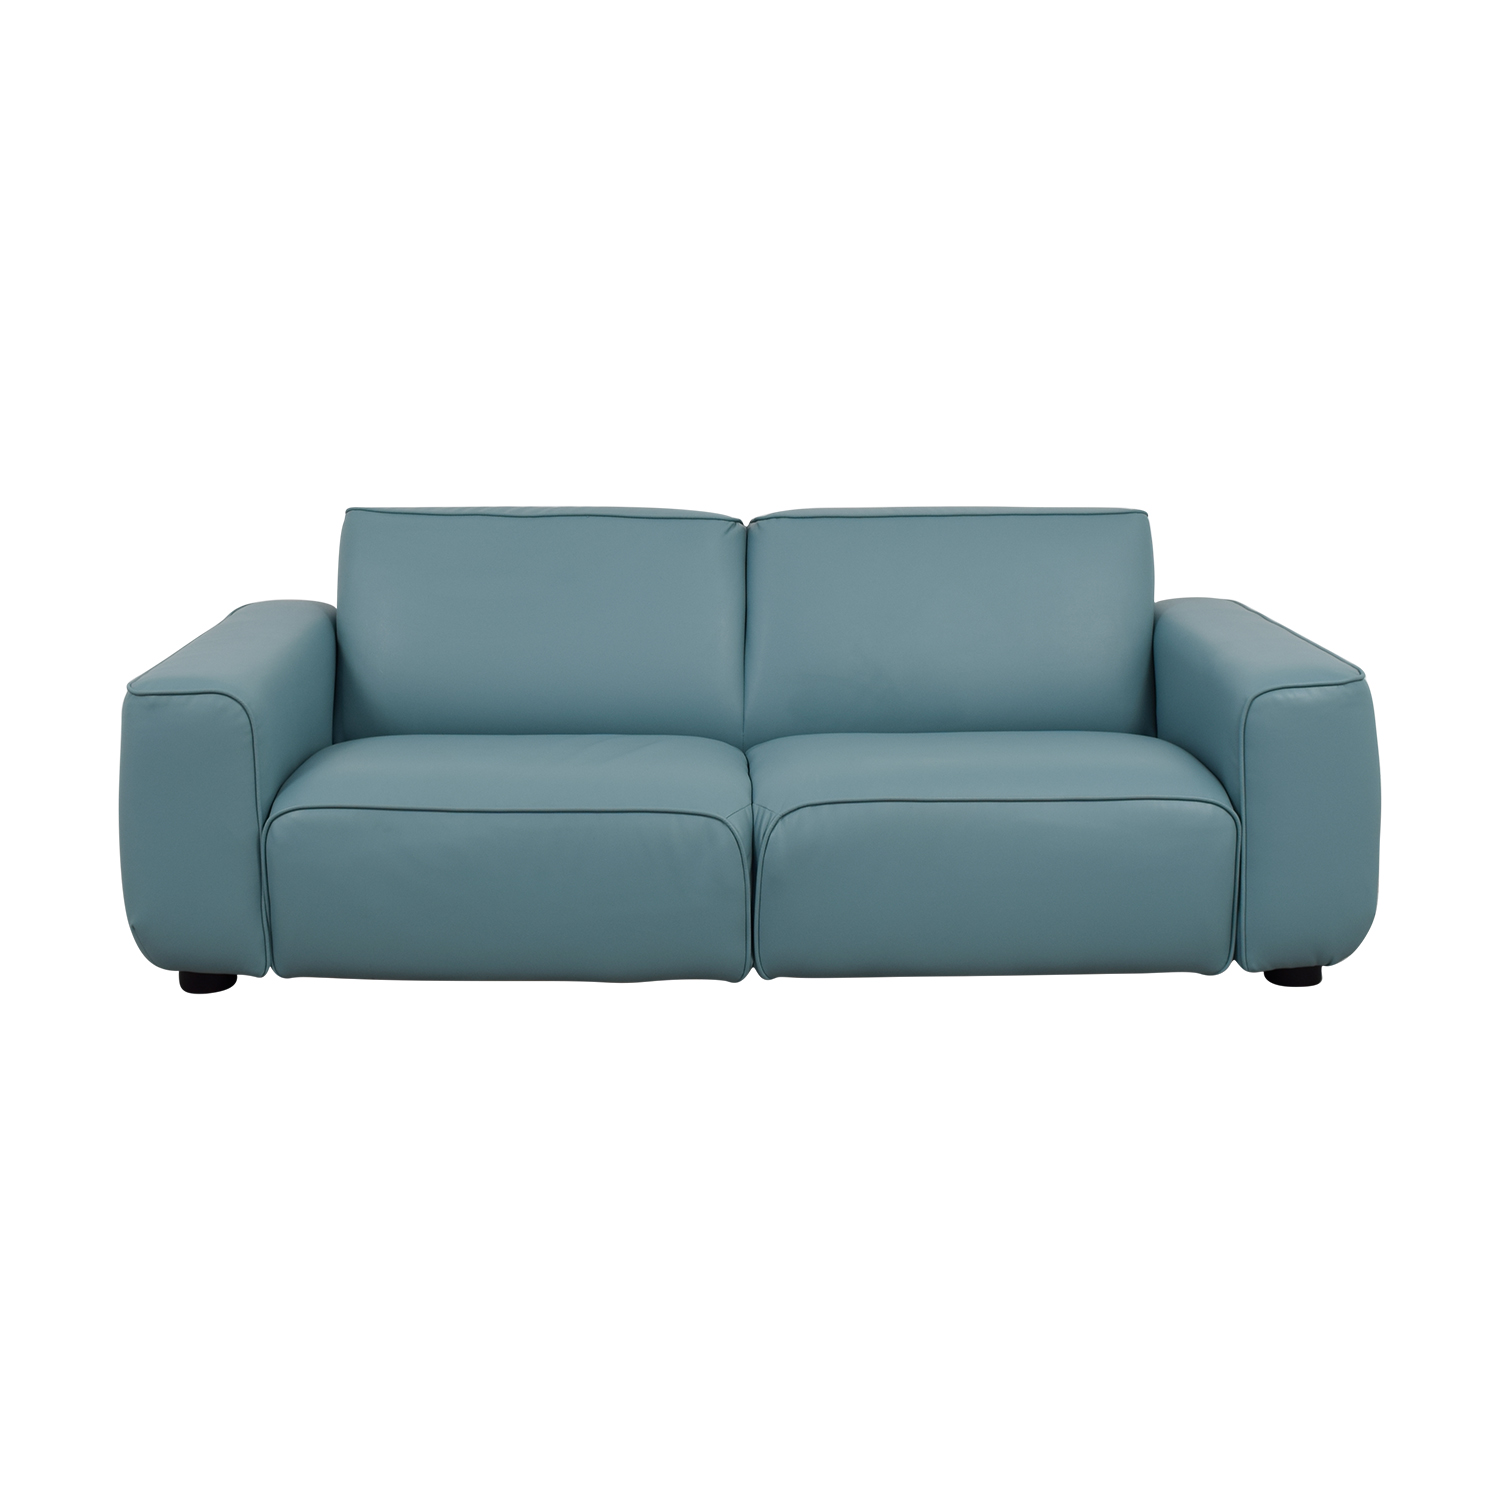 IKEA IKEA Coated Baby Blue Loveseat used